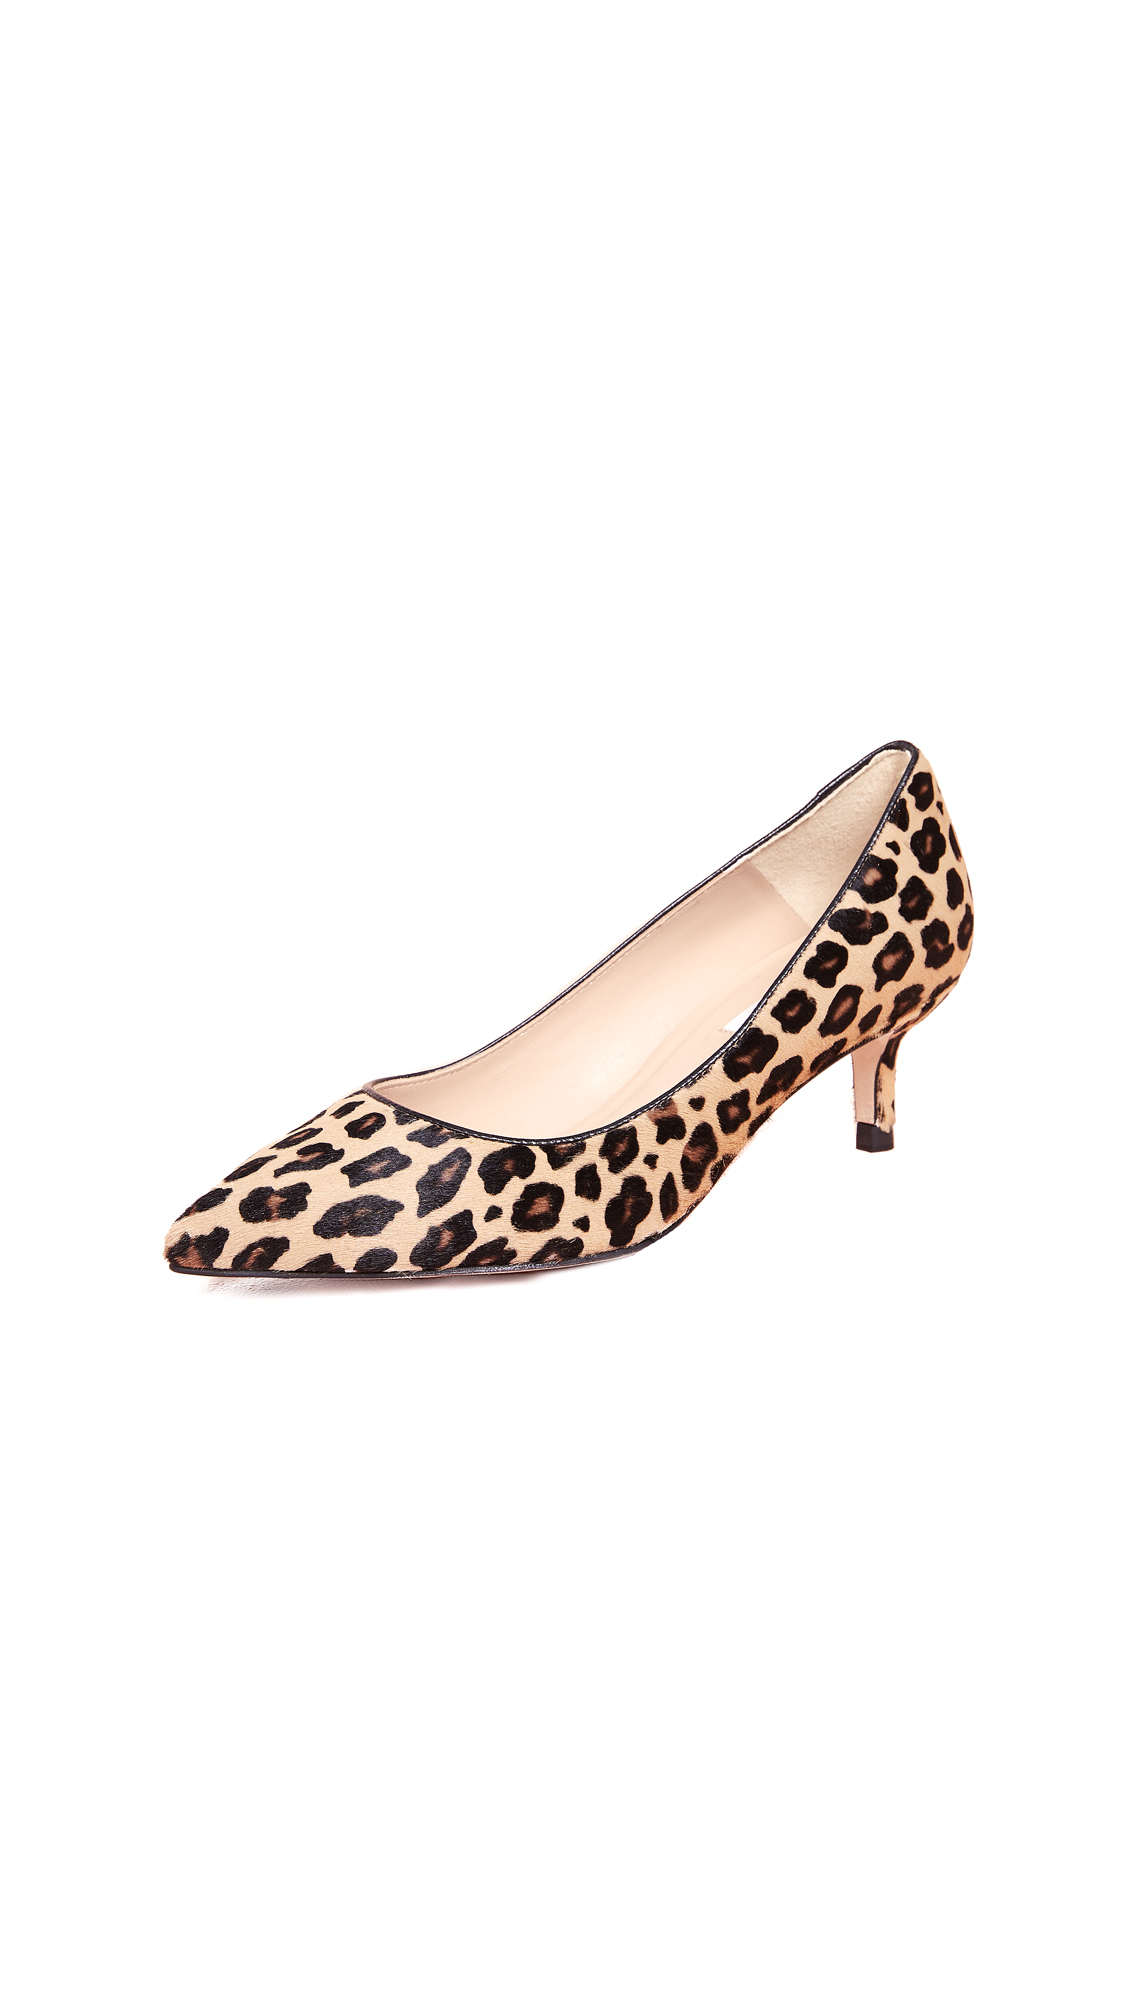 L.K. Bennett Audrey Point Toe Pumps - Natural Leopard